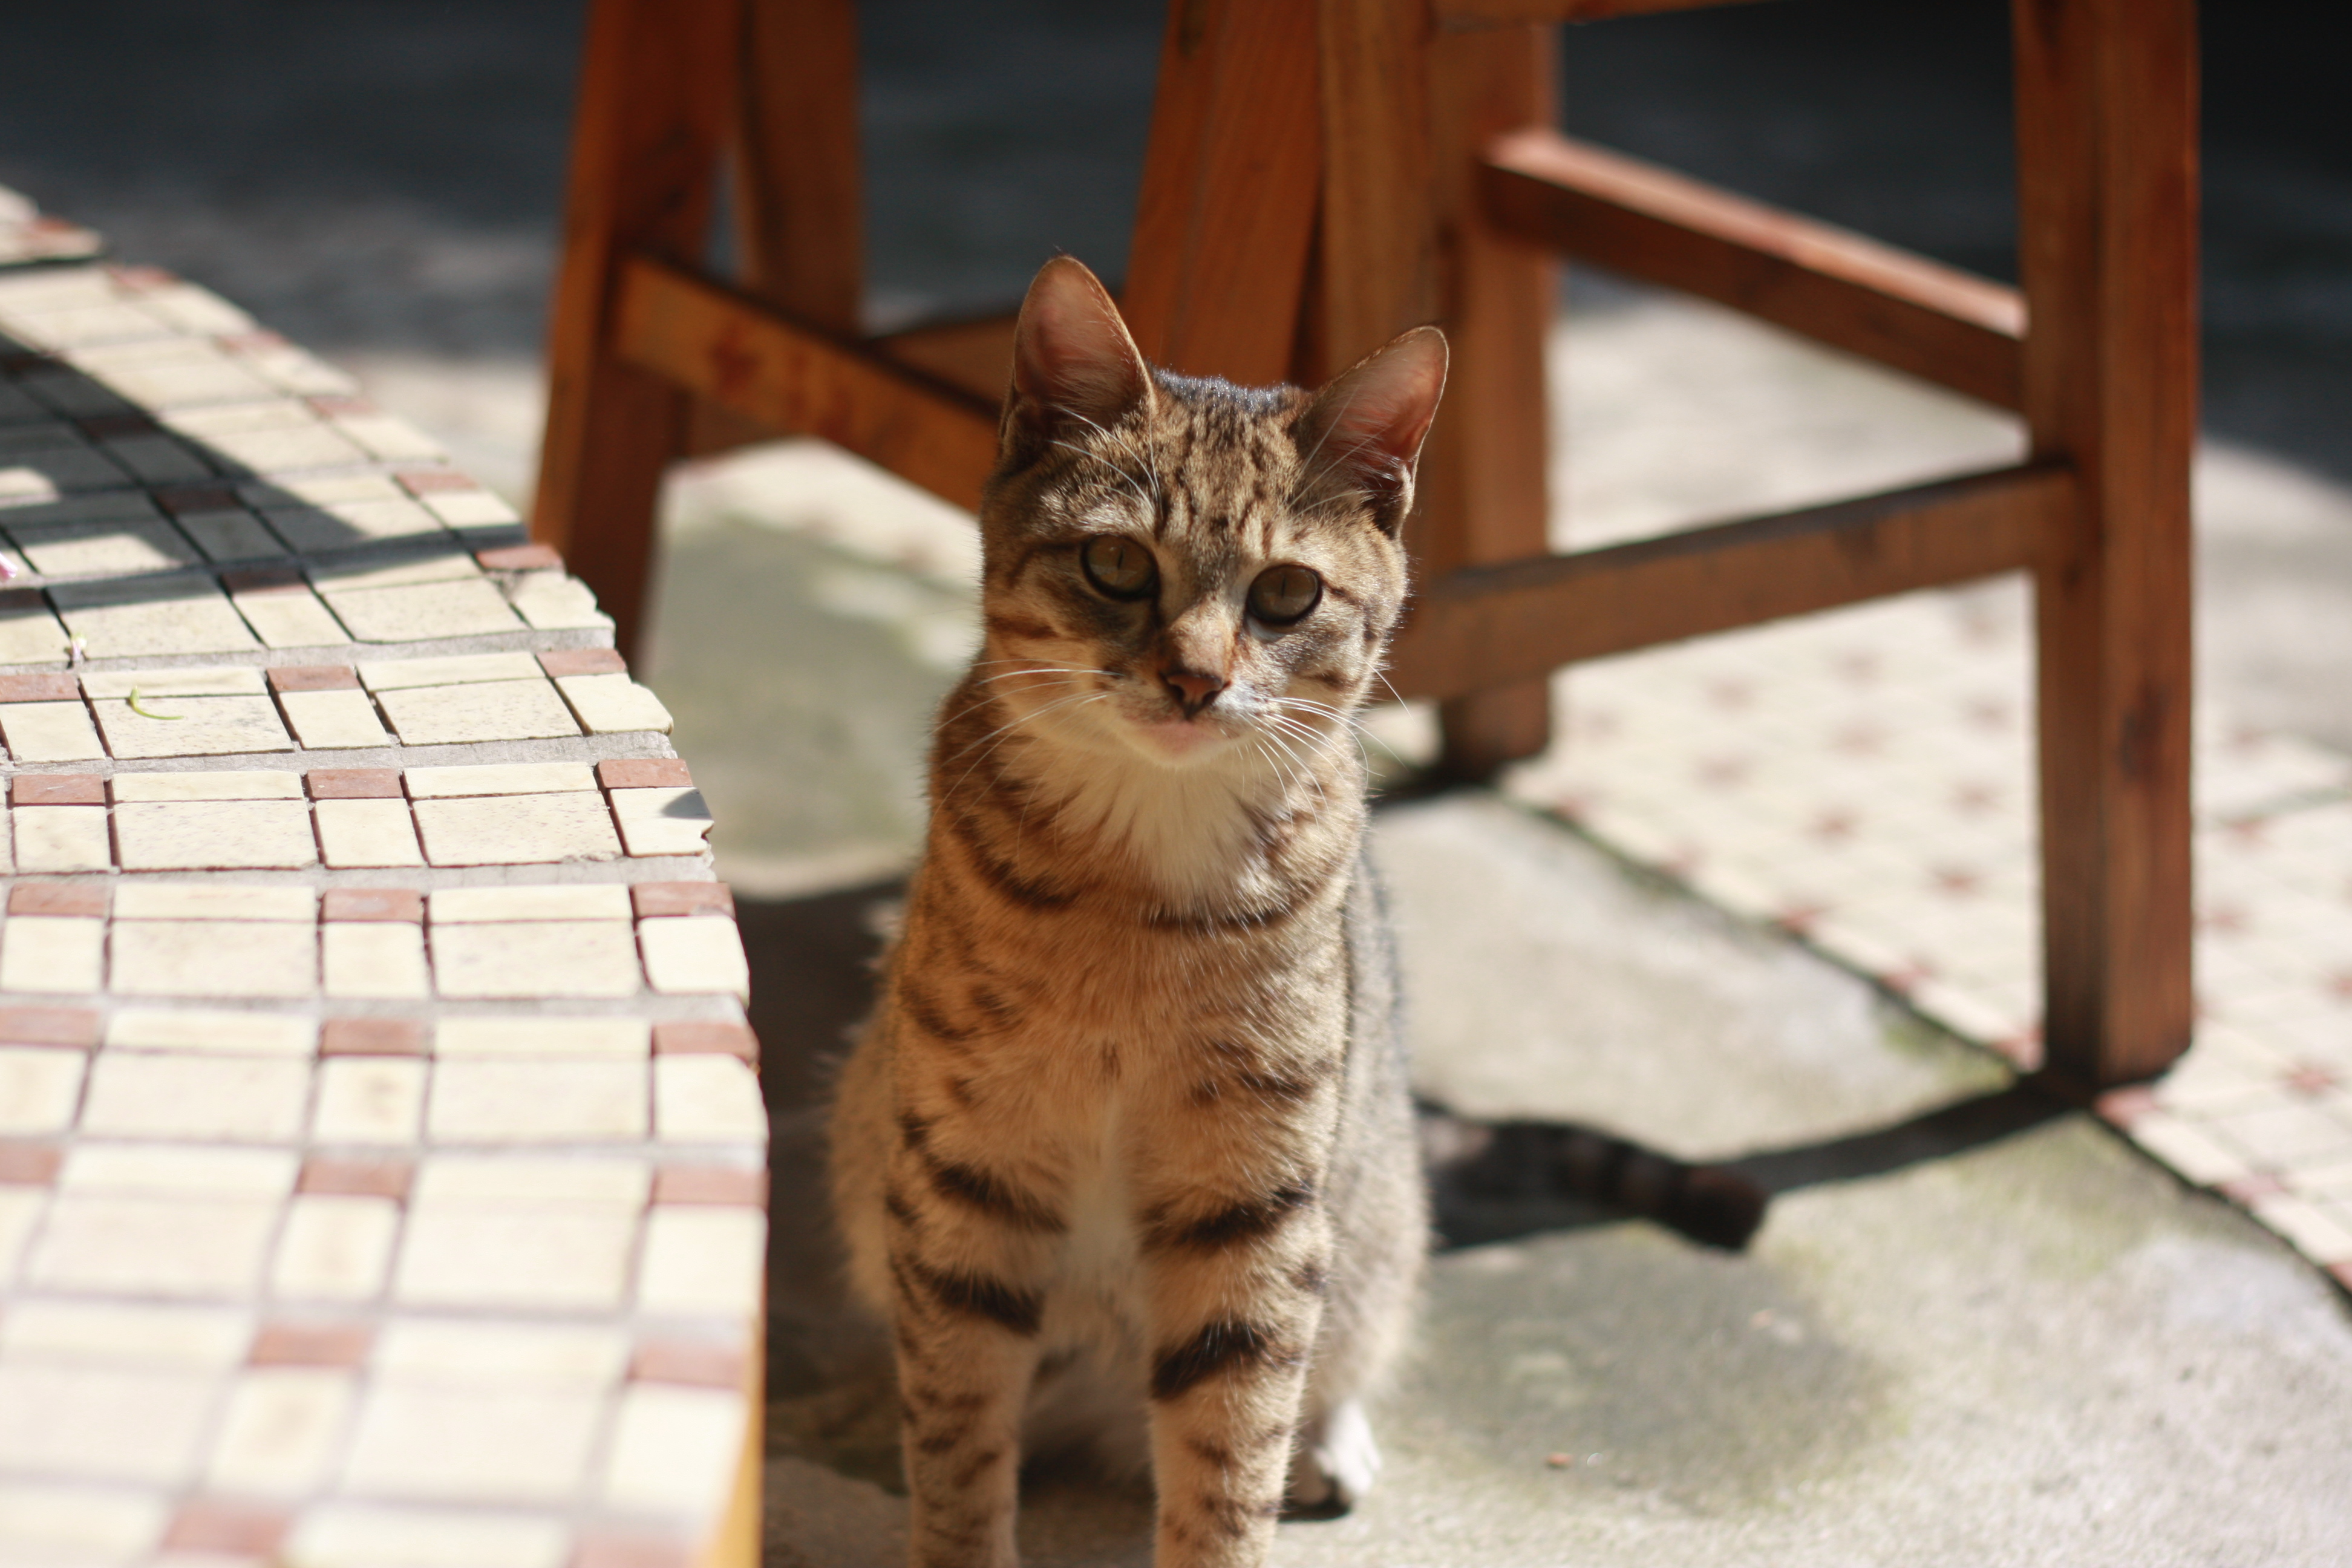 High Definition Animal Wallpapers Brown Tabby Cat Sitting On Concrete Floor During Daytime